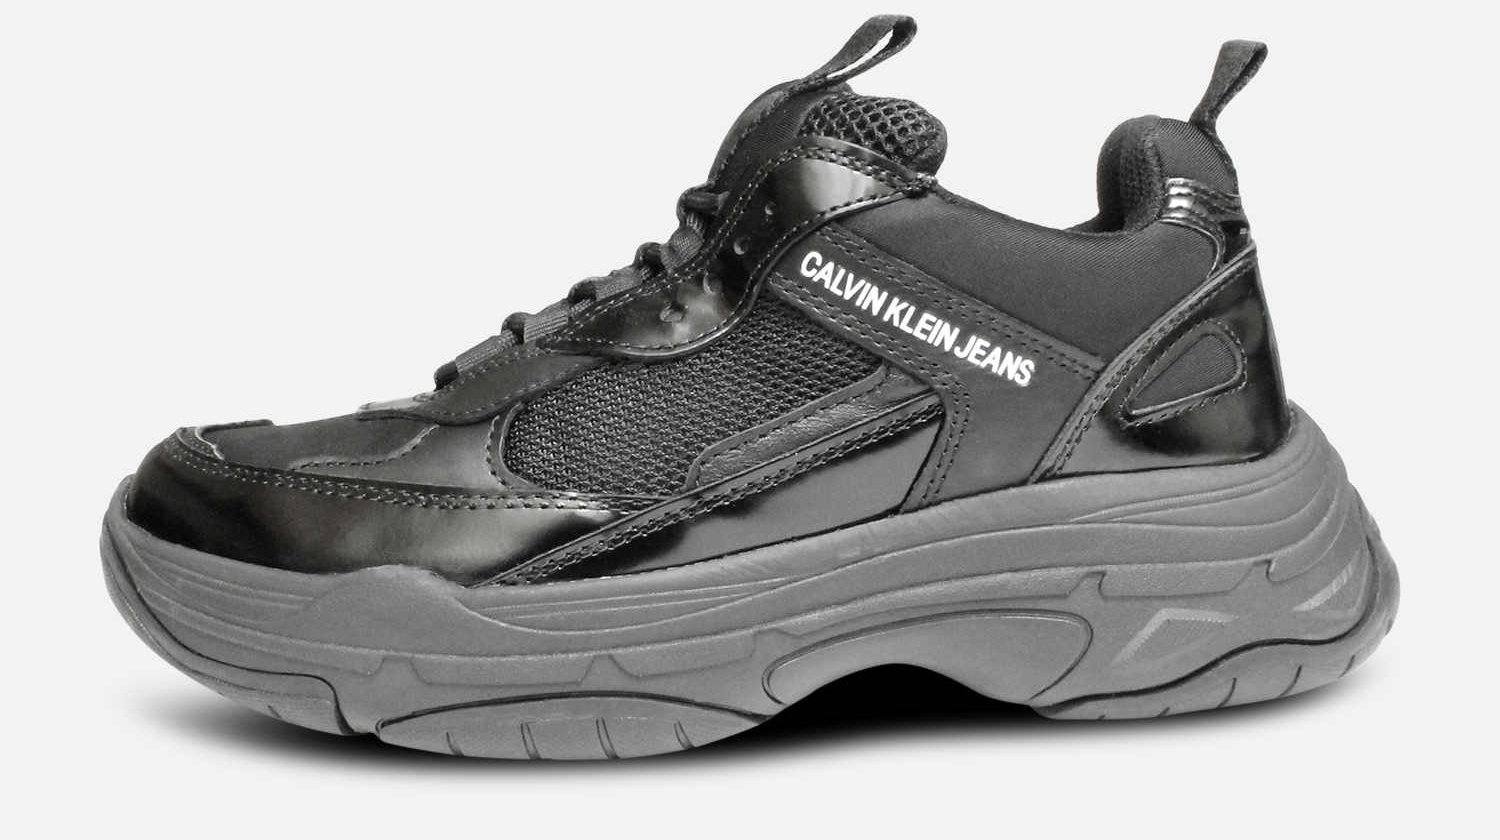 Calvin Klein Maya Chunky Trainers in Black Leather